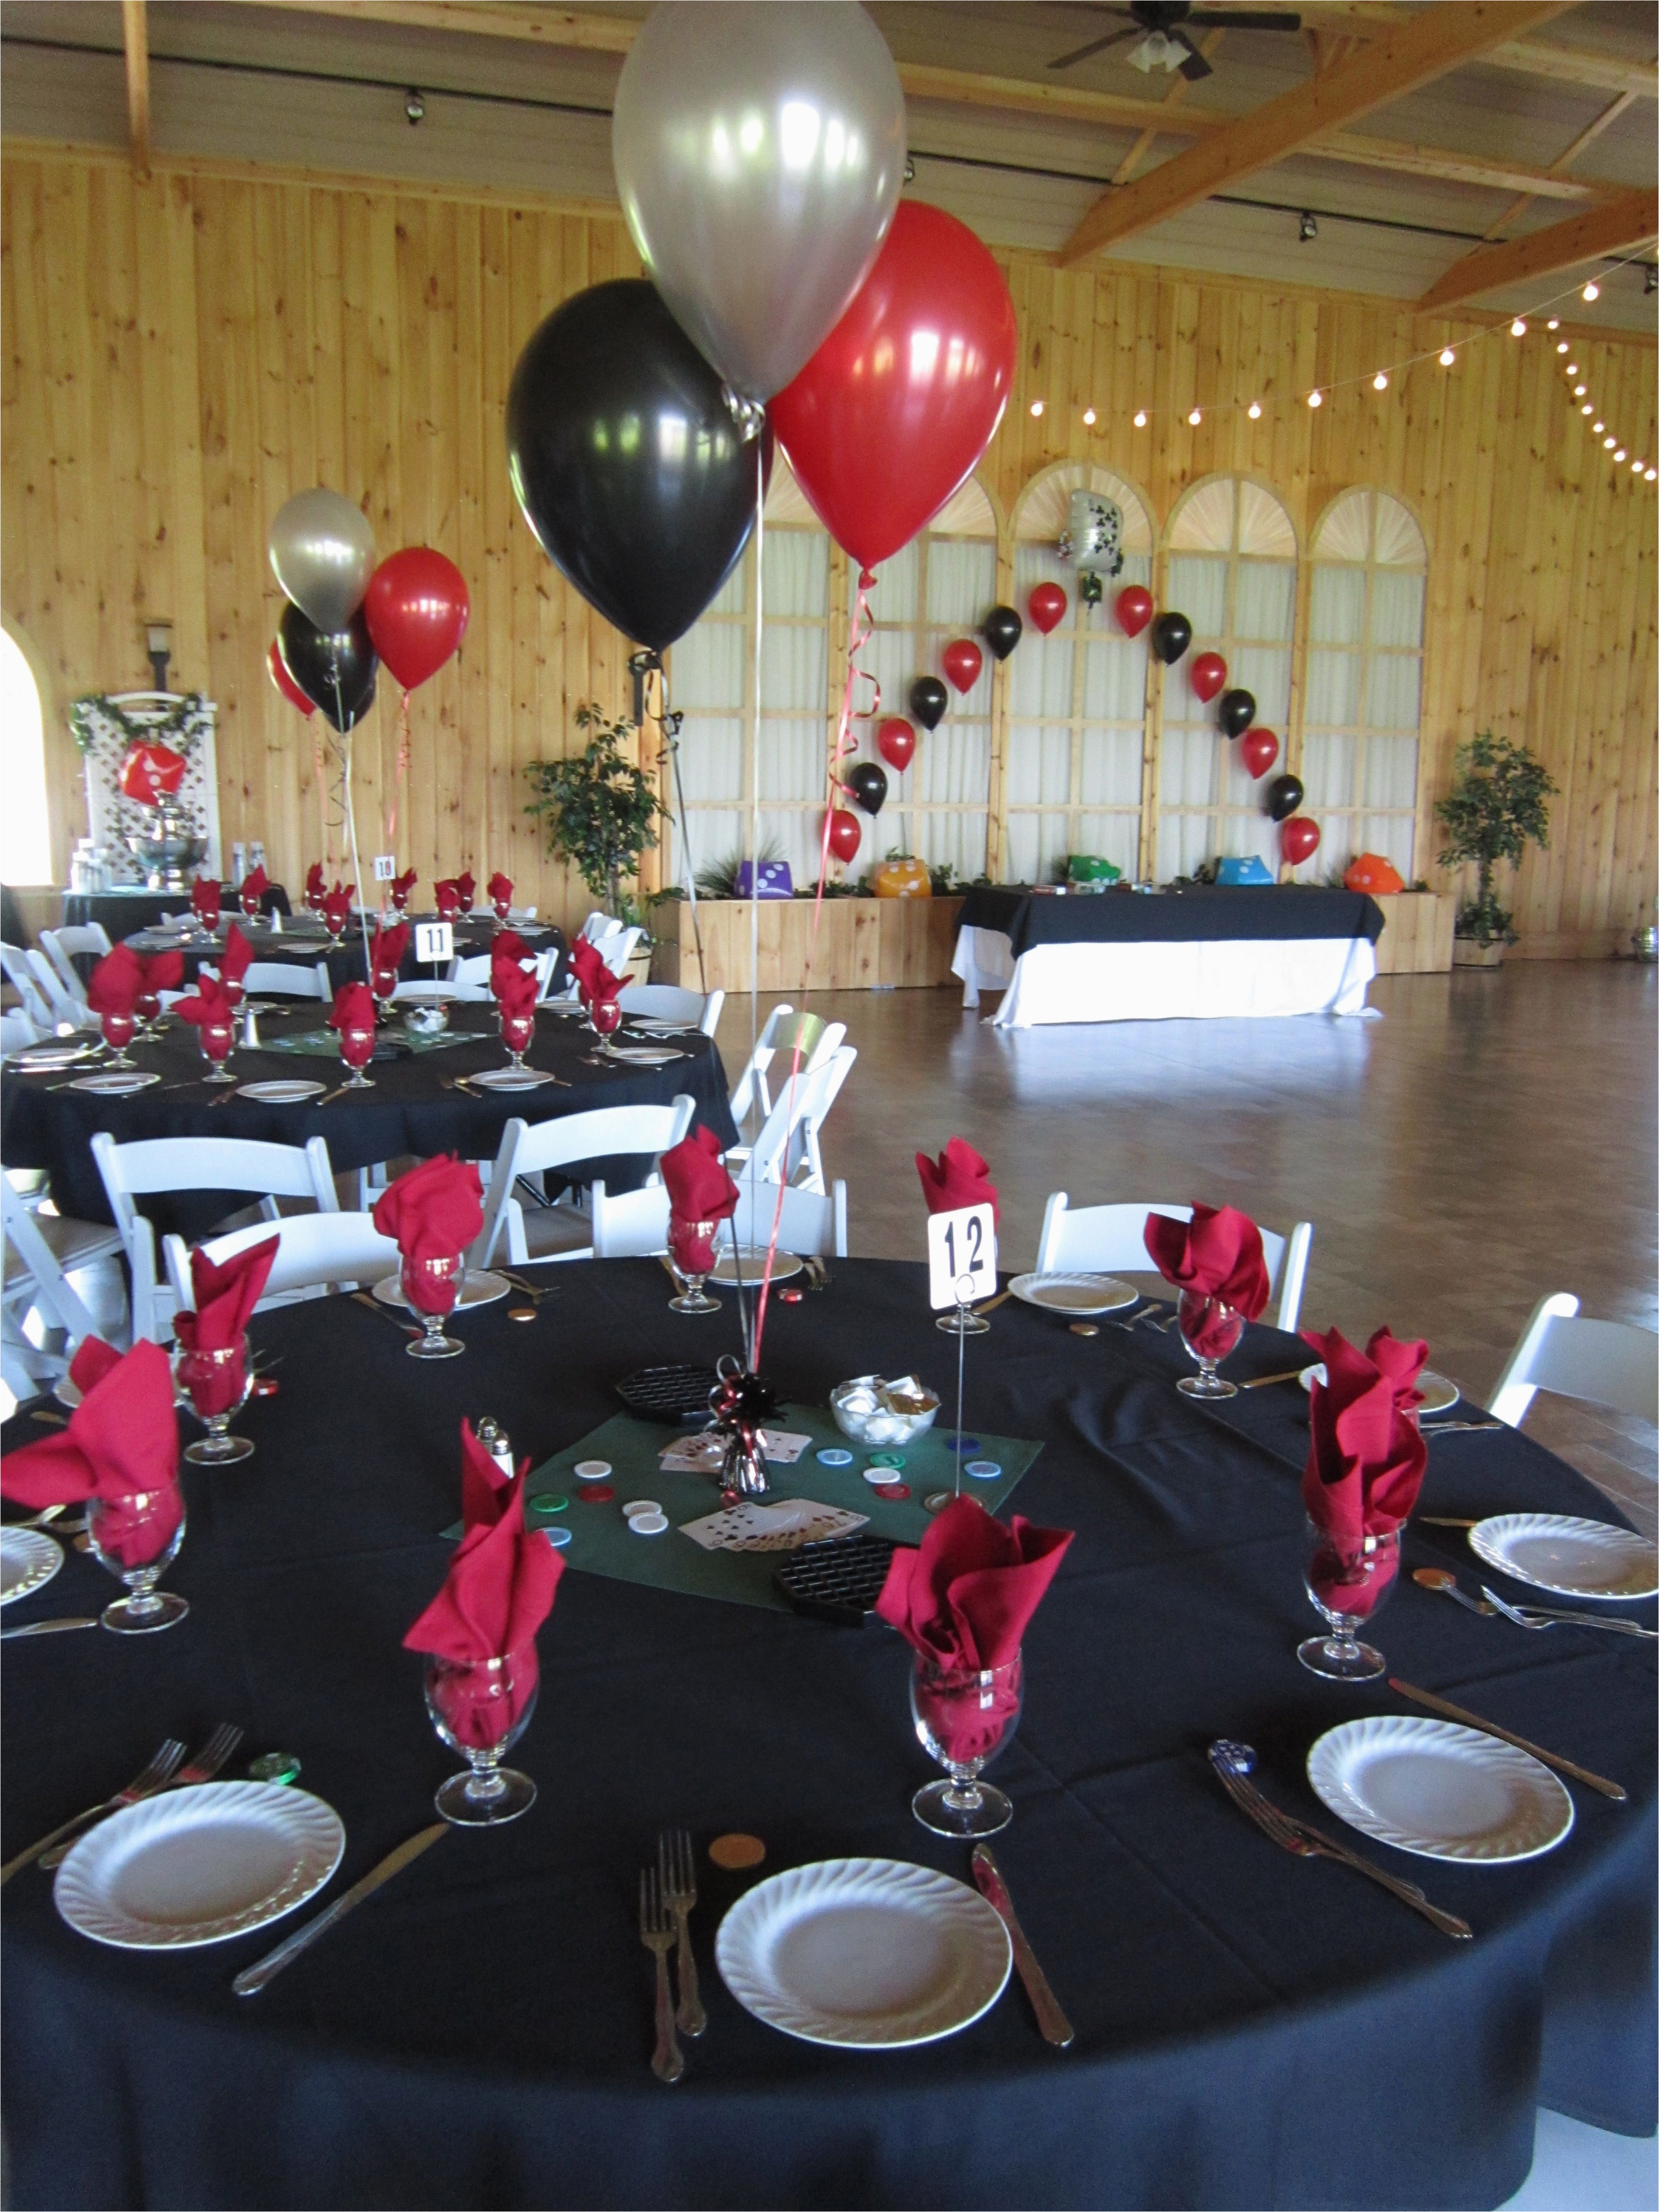 50th Birthday Party Decorations Black And Silver Casino Prom Balloons In Red At